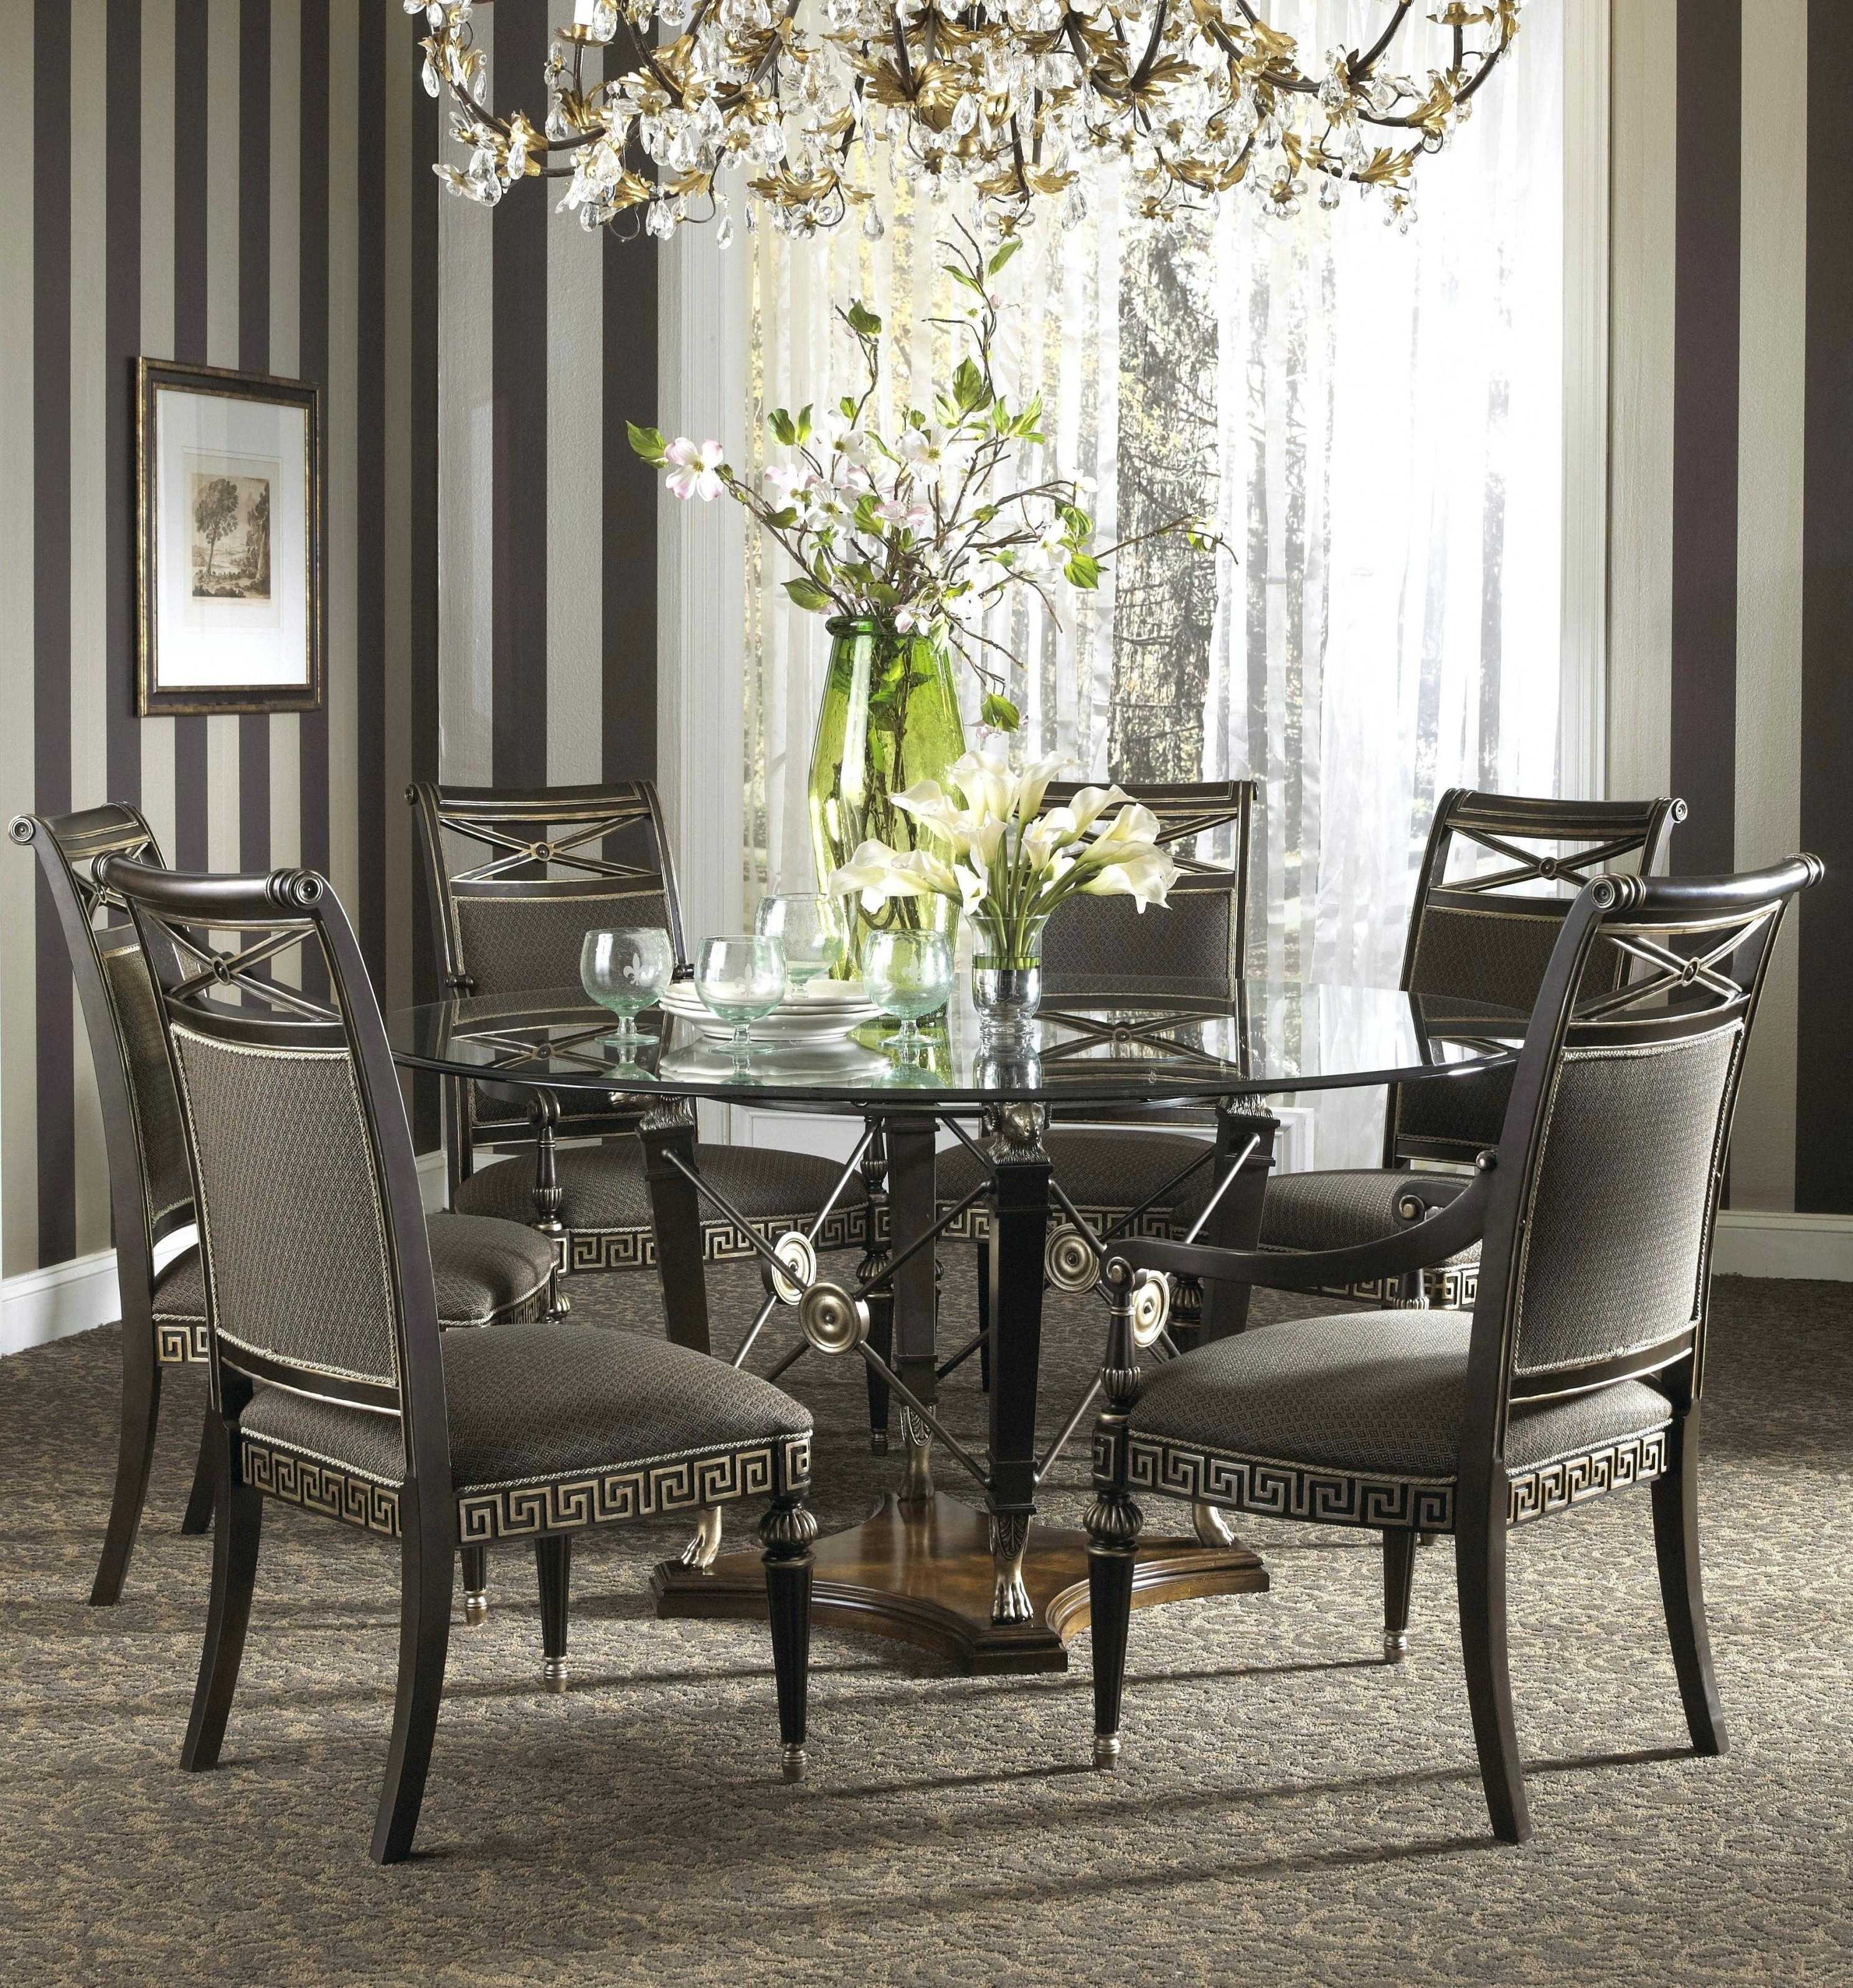 Rooms Go Dining Table Sets Ideas With Attractive Chairs Room Buffet Layjao